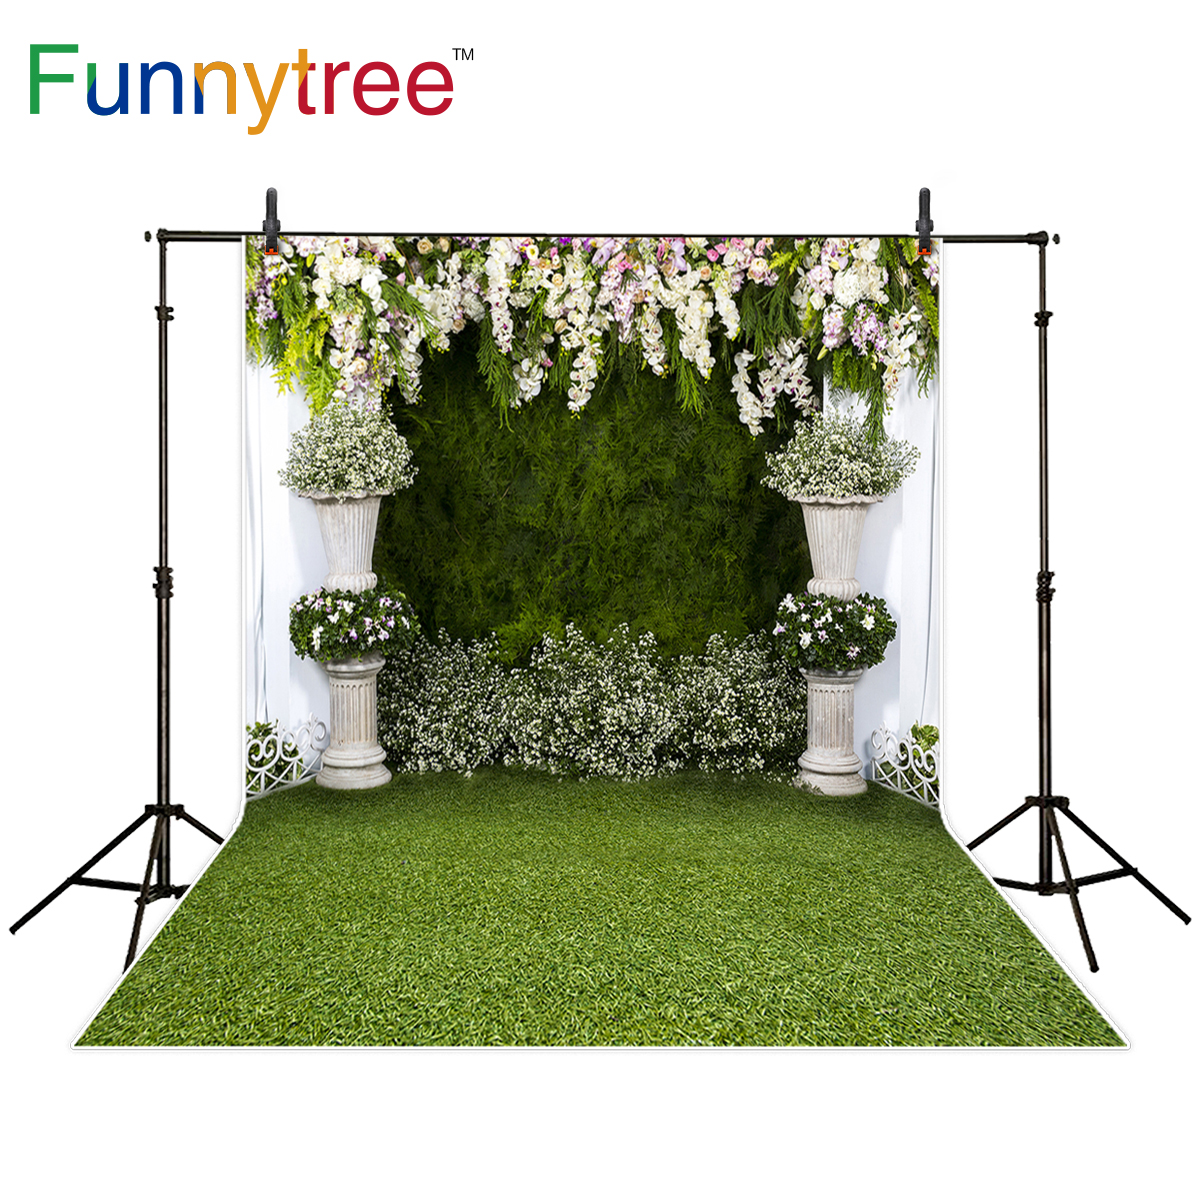 Funnytree background for photo studio wedding spring green grass flower door romantic backdrop photography photo shoot photocall allenjoy photography backdrop flower door wedding children painting colorful background photo studio photocall photo shoot